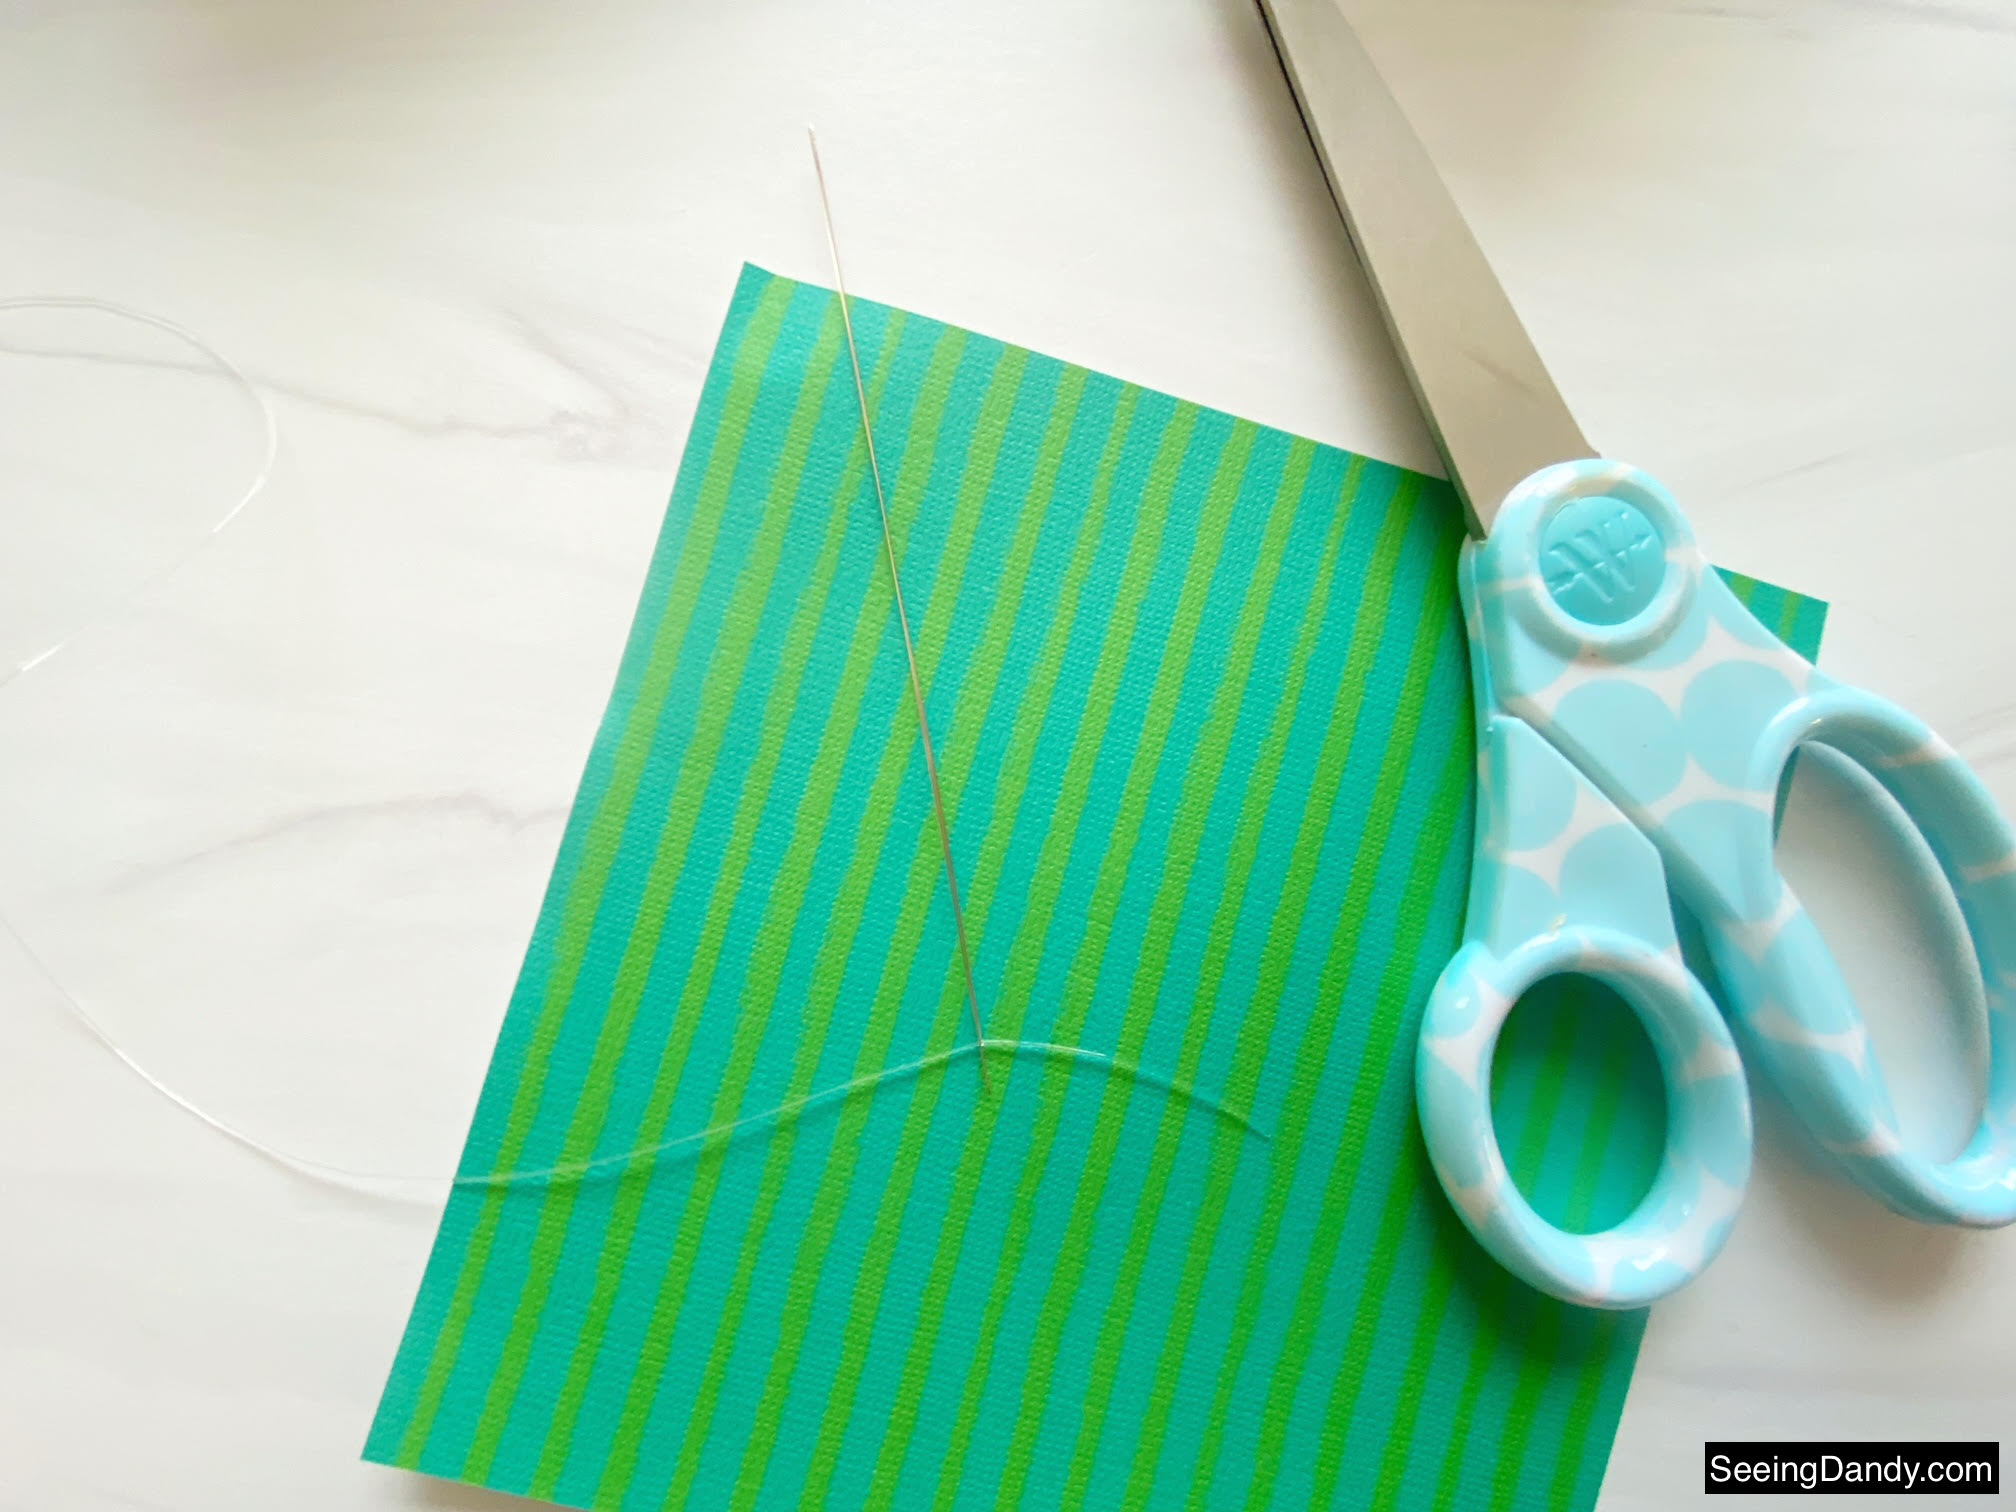 bracelet making bead needle, green blue stripe scrapbook paper, marble countertop, elasticity stretch bead cord, craft scissors, easy crafts, clear bracelet making elastic cord